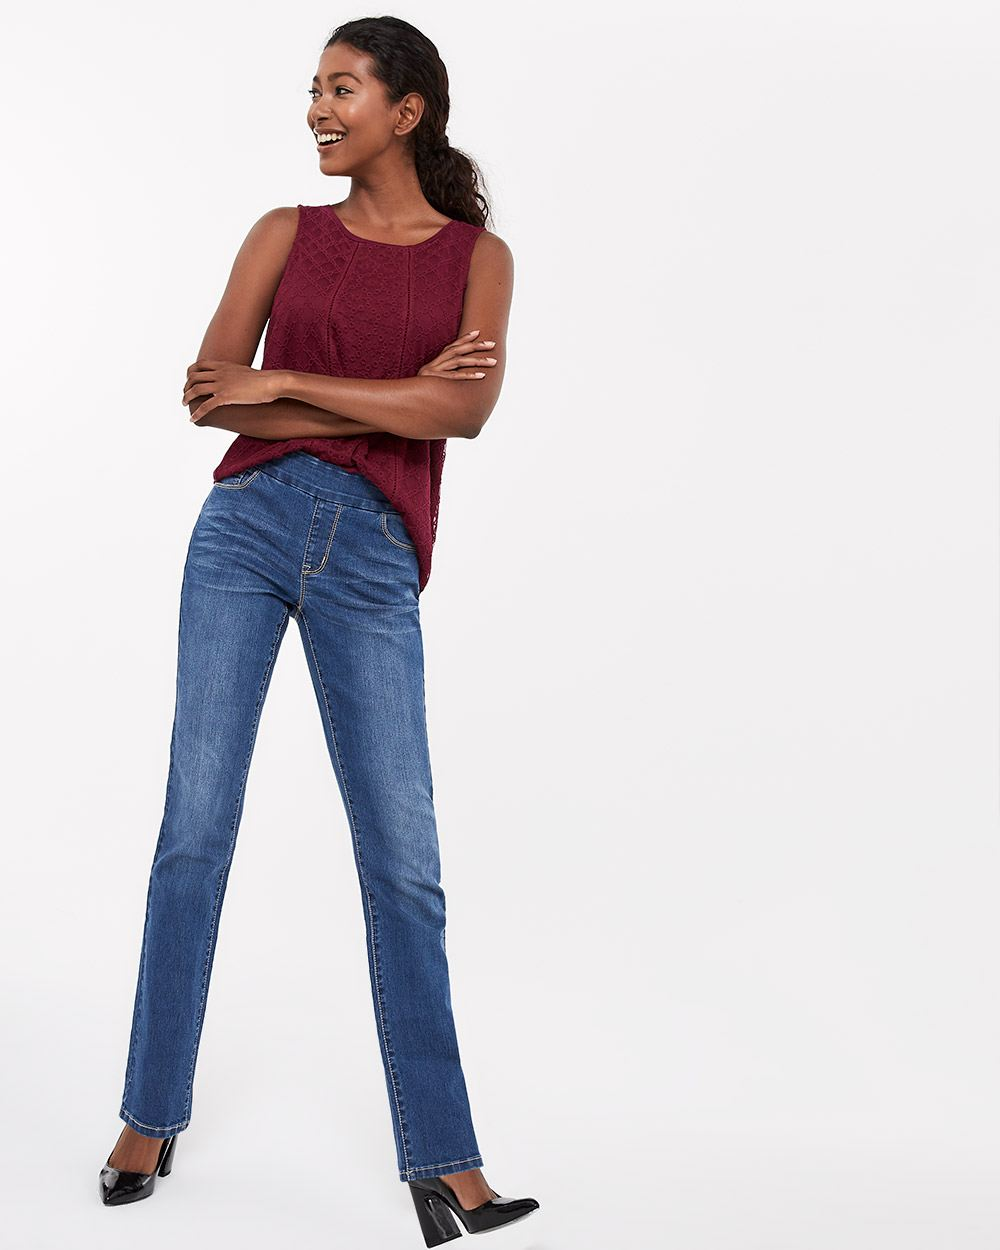 The Petite Original Comfort Straight Leg Medium Wash Jeans